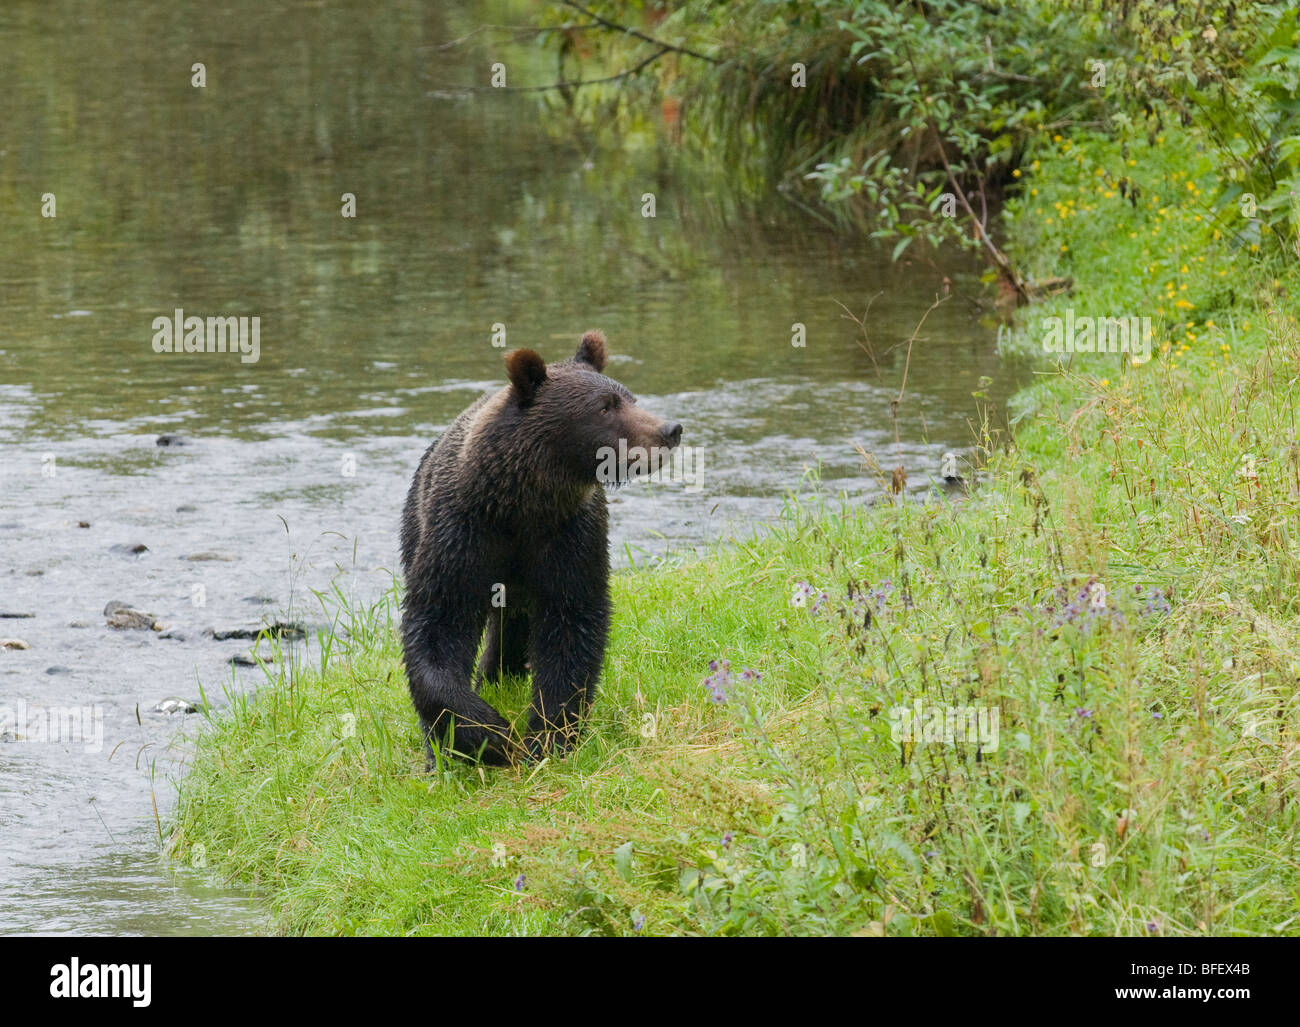 Grizzly Bear (Ursus arctos horribilis) Juvenile. Normally a solitary animal but in costal areas grizzly congregates - Stock Image